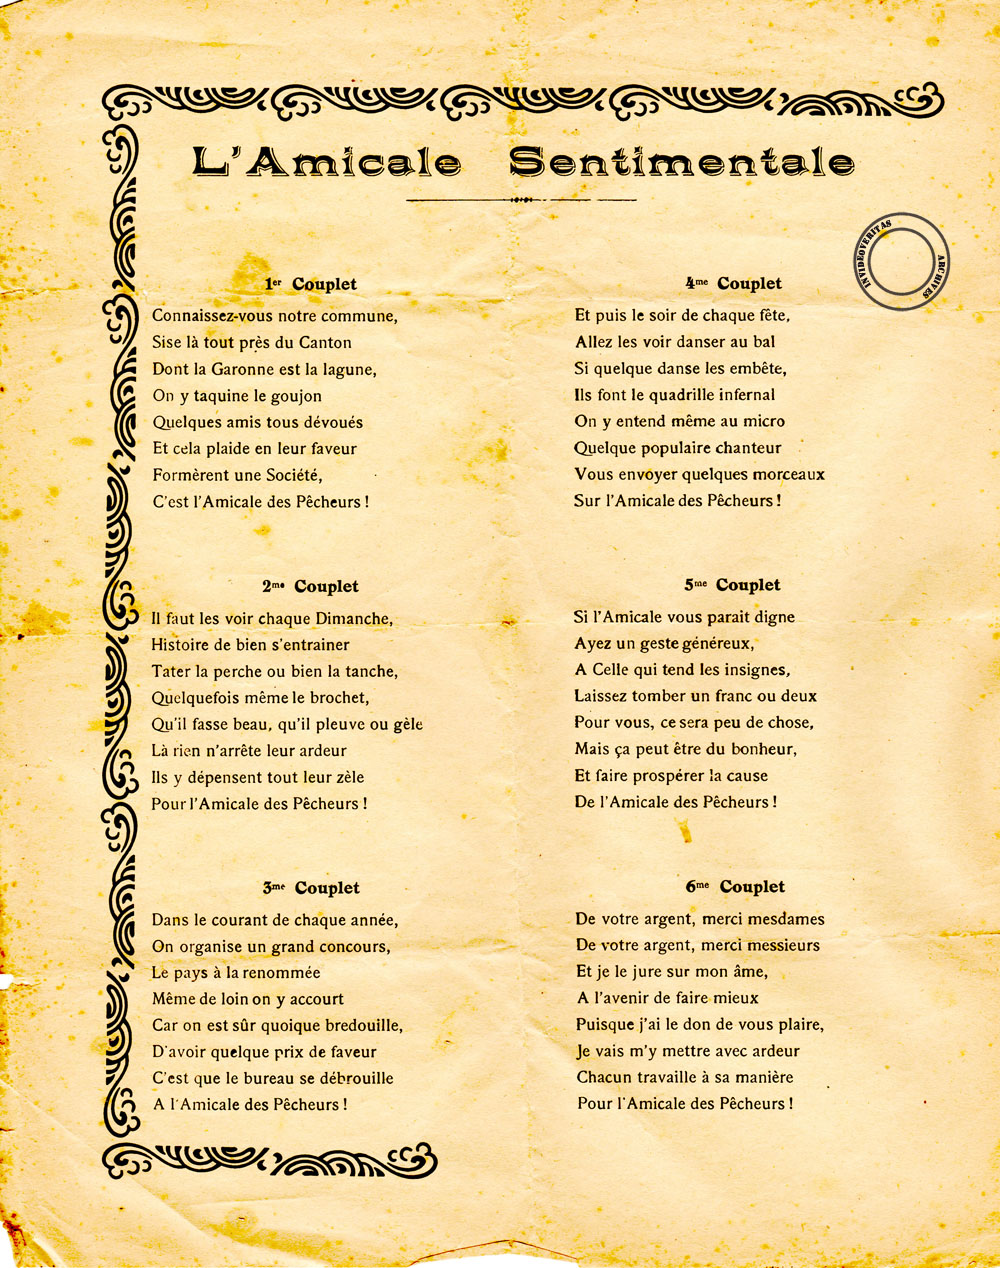 20 L'amicale Sentimentale